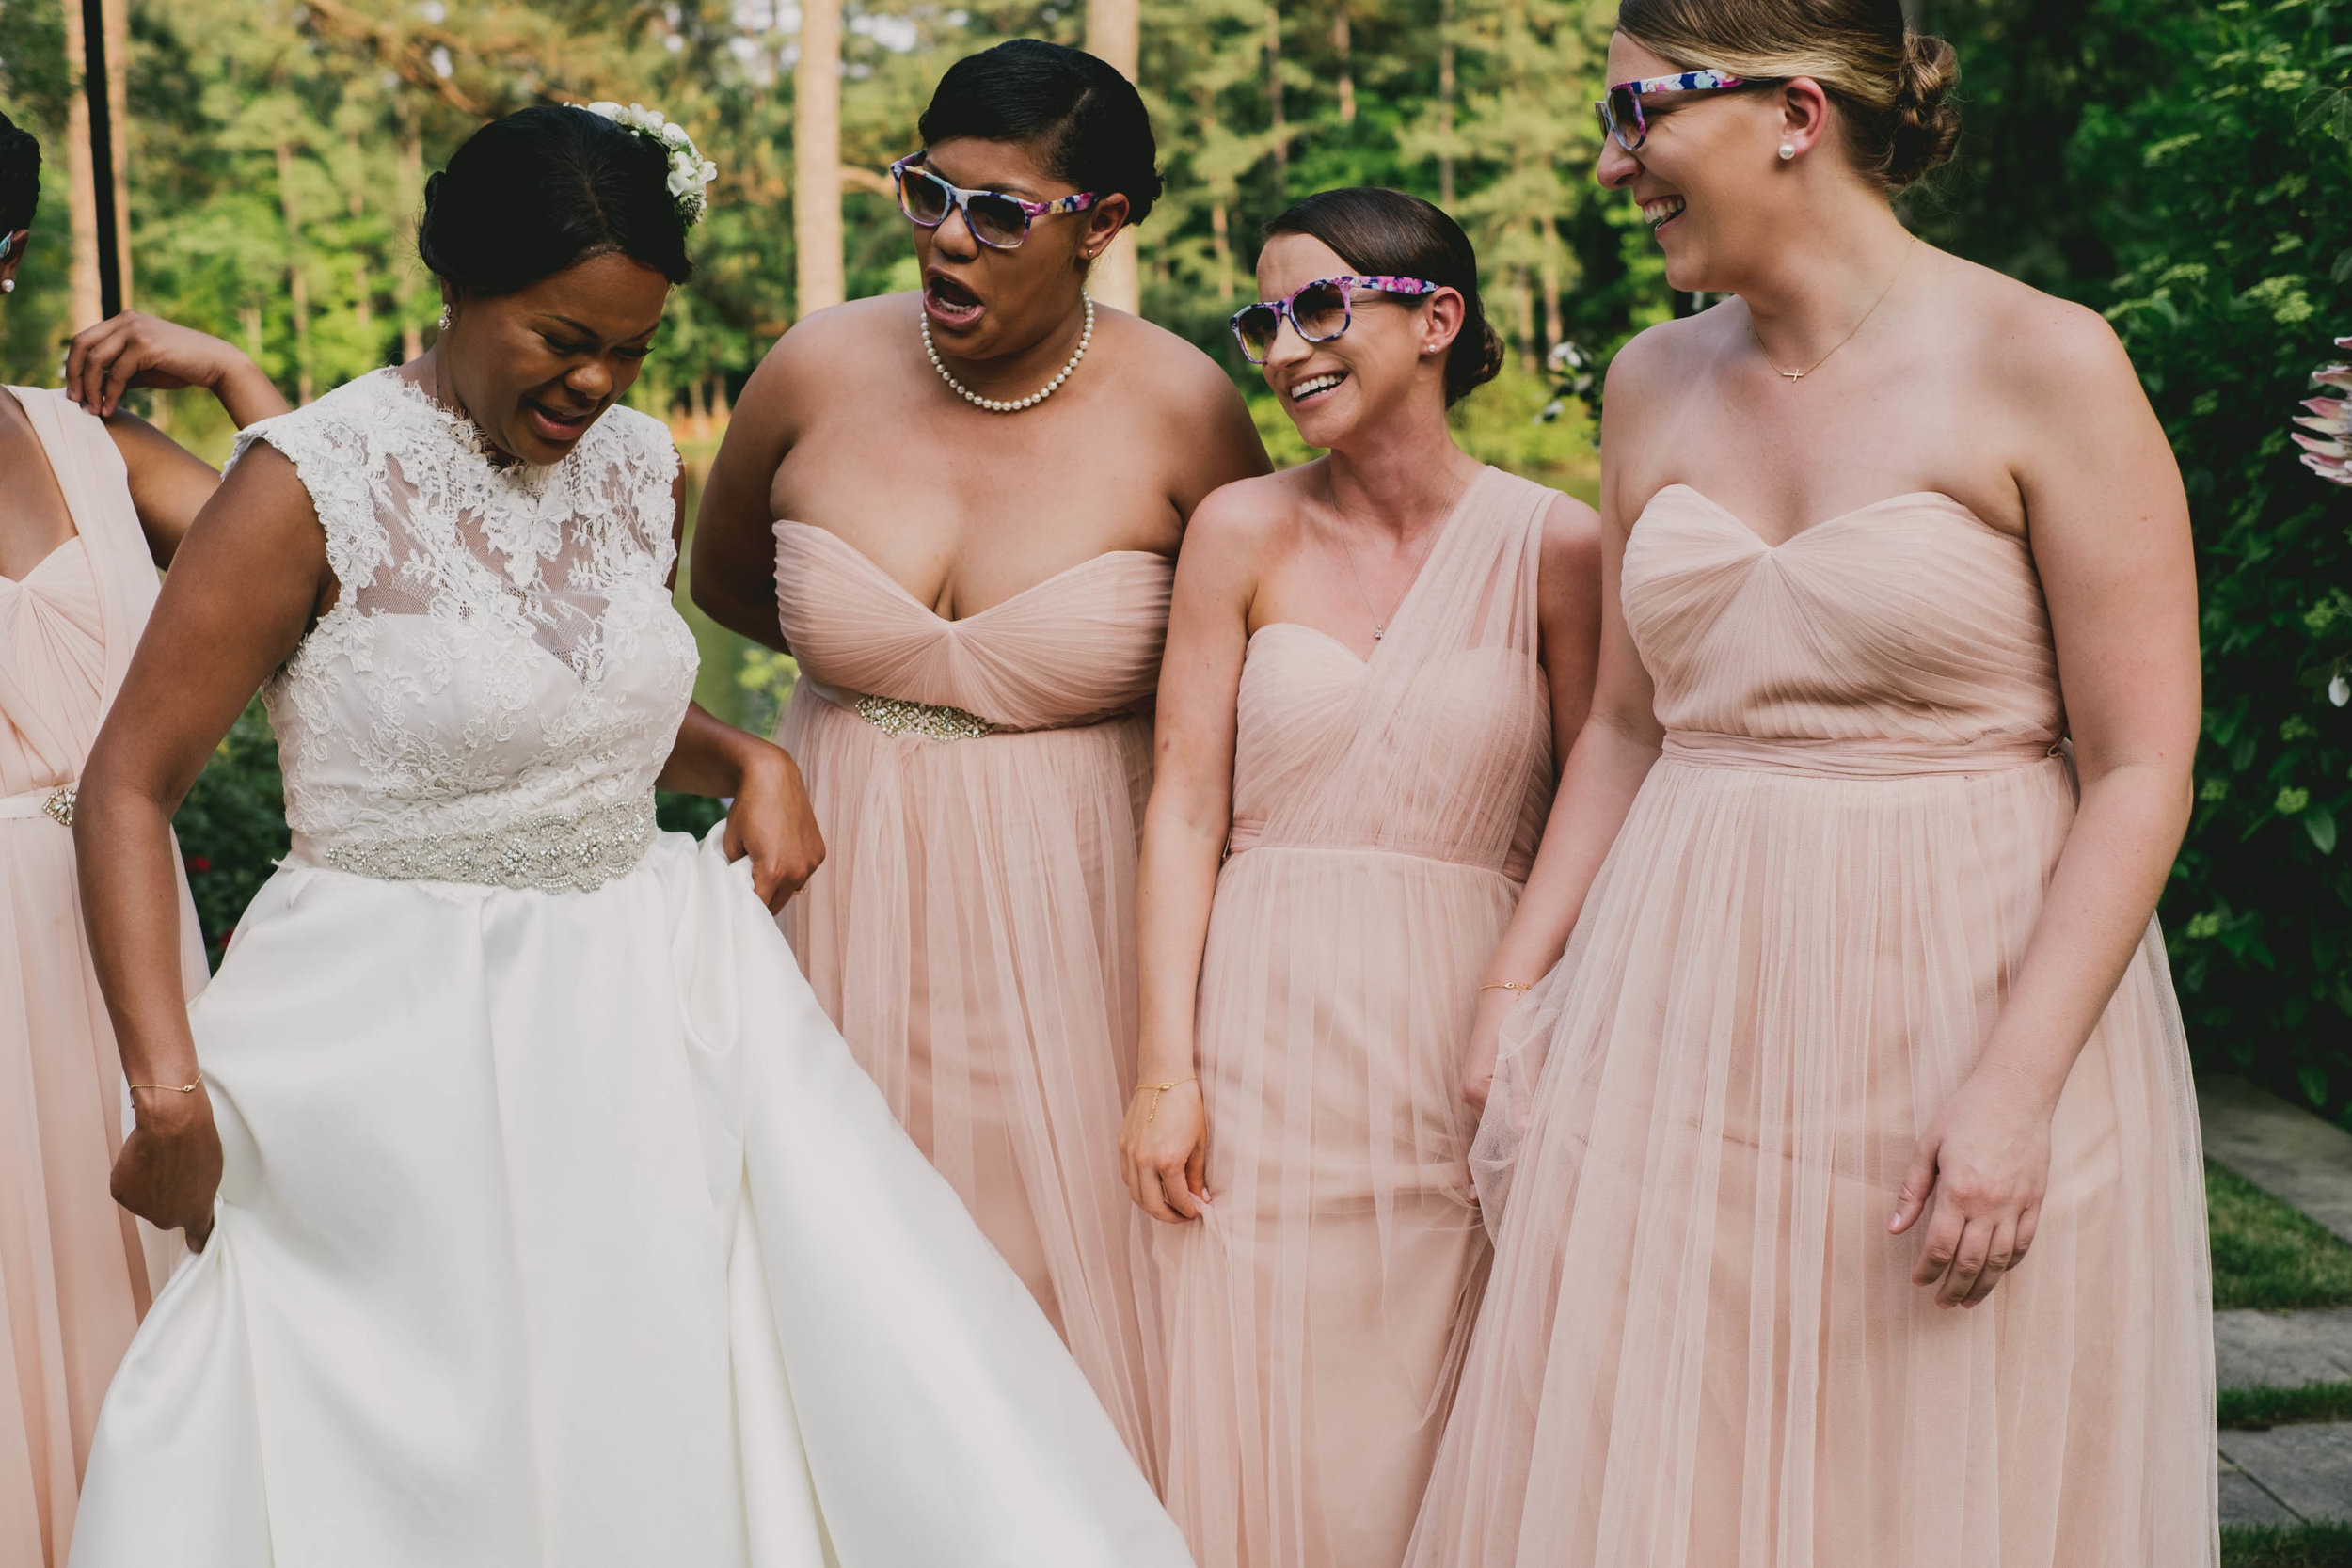 The bride trying not to laugh during photos after their ceremony